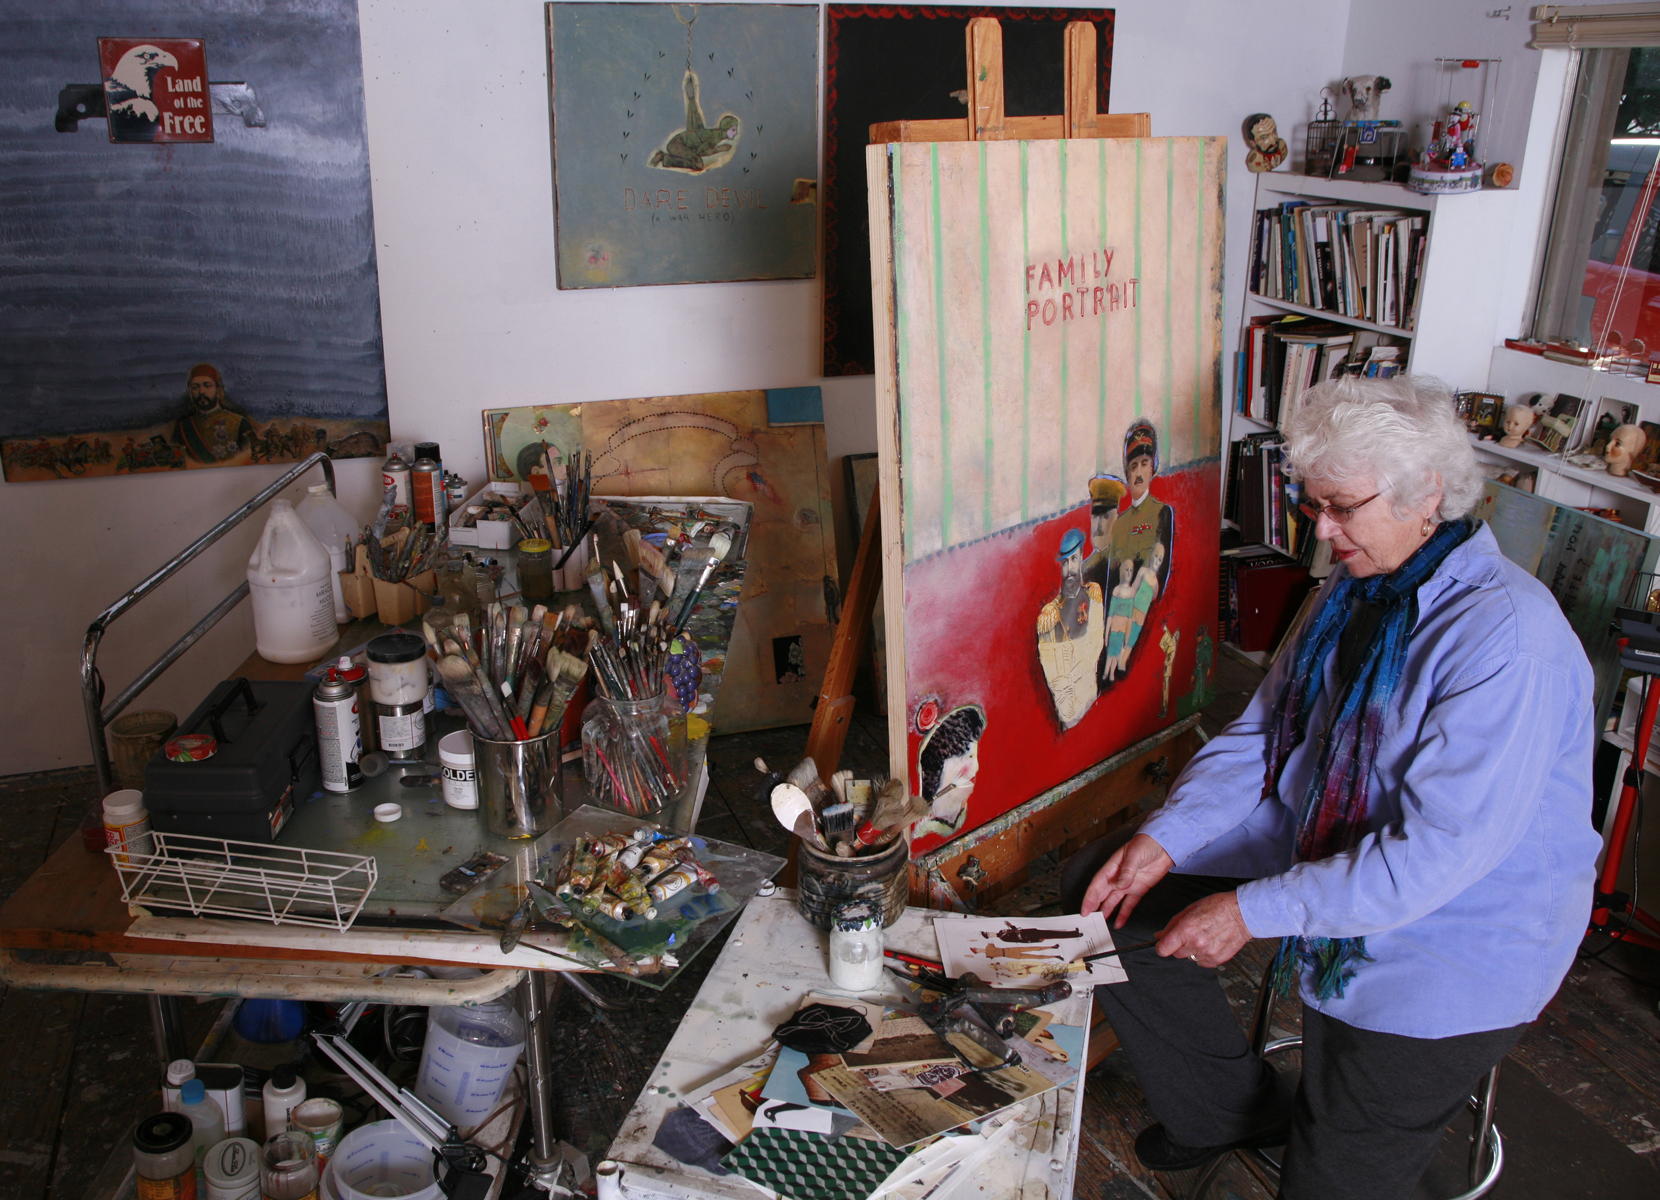 Inez Storer in her studio.  Inez Storer's work has been included in numerous group exhibitions throughout the country. She taught at the San Francisco Art Institute (1981 - 1999), Sonoma State University (1976 - 1988), San Francisco State University (1970 - 1973), and the College of Marin (1968 - 1979). She has received numerous grants and awards, including a Pollock-Krasner Foundation grant in 1999, and has worked twice as a visiting artist at the American Academy in Rome (1997, 1996). Her work is included in the permanent collections of the Fine Arts Museums of San Francisco, the Oakland Museum of California, the Lannan Museum in Fort Worth, Texas, the San Jose Museum of Art, and the de Saisset Museum at Santa Clara University. Storer lives in Inverness, California and maintains a studio in Point Reyes Station, California.